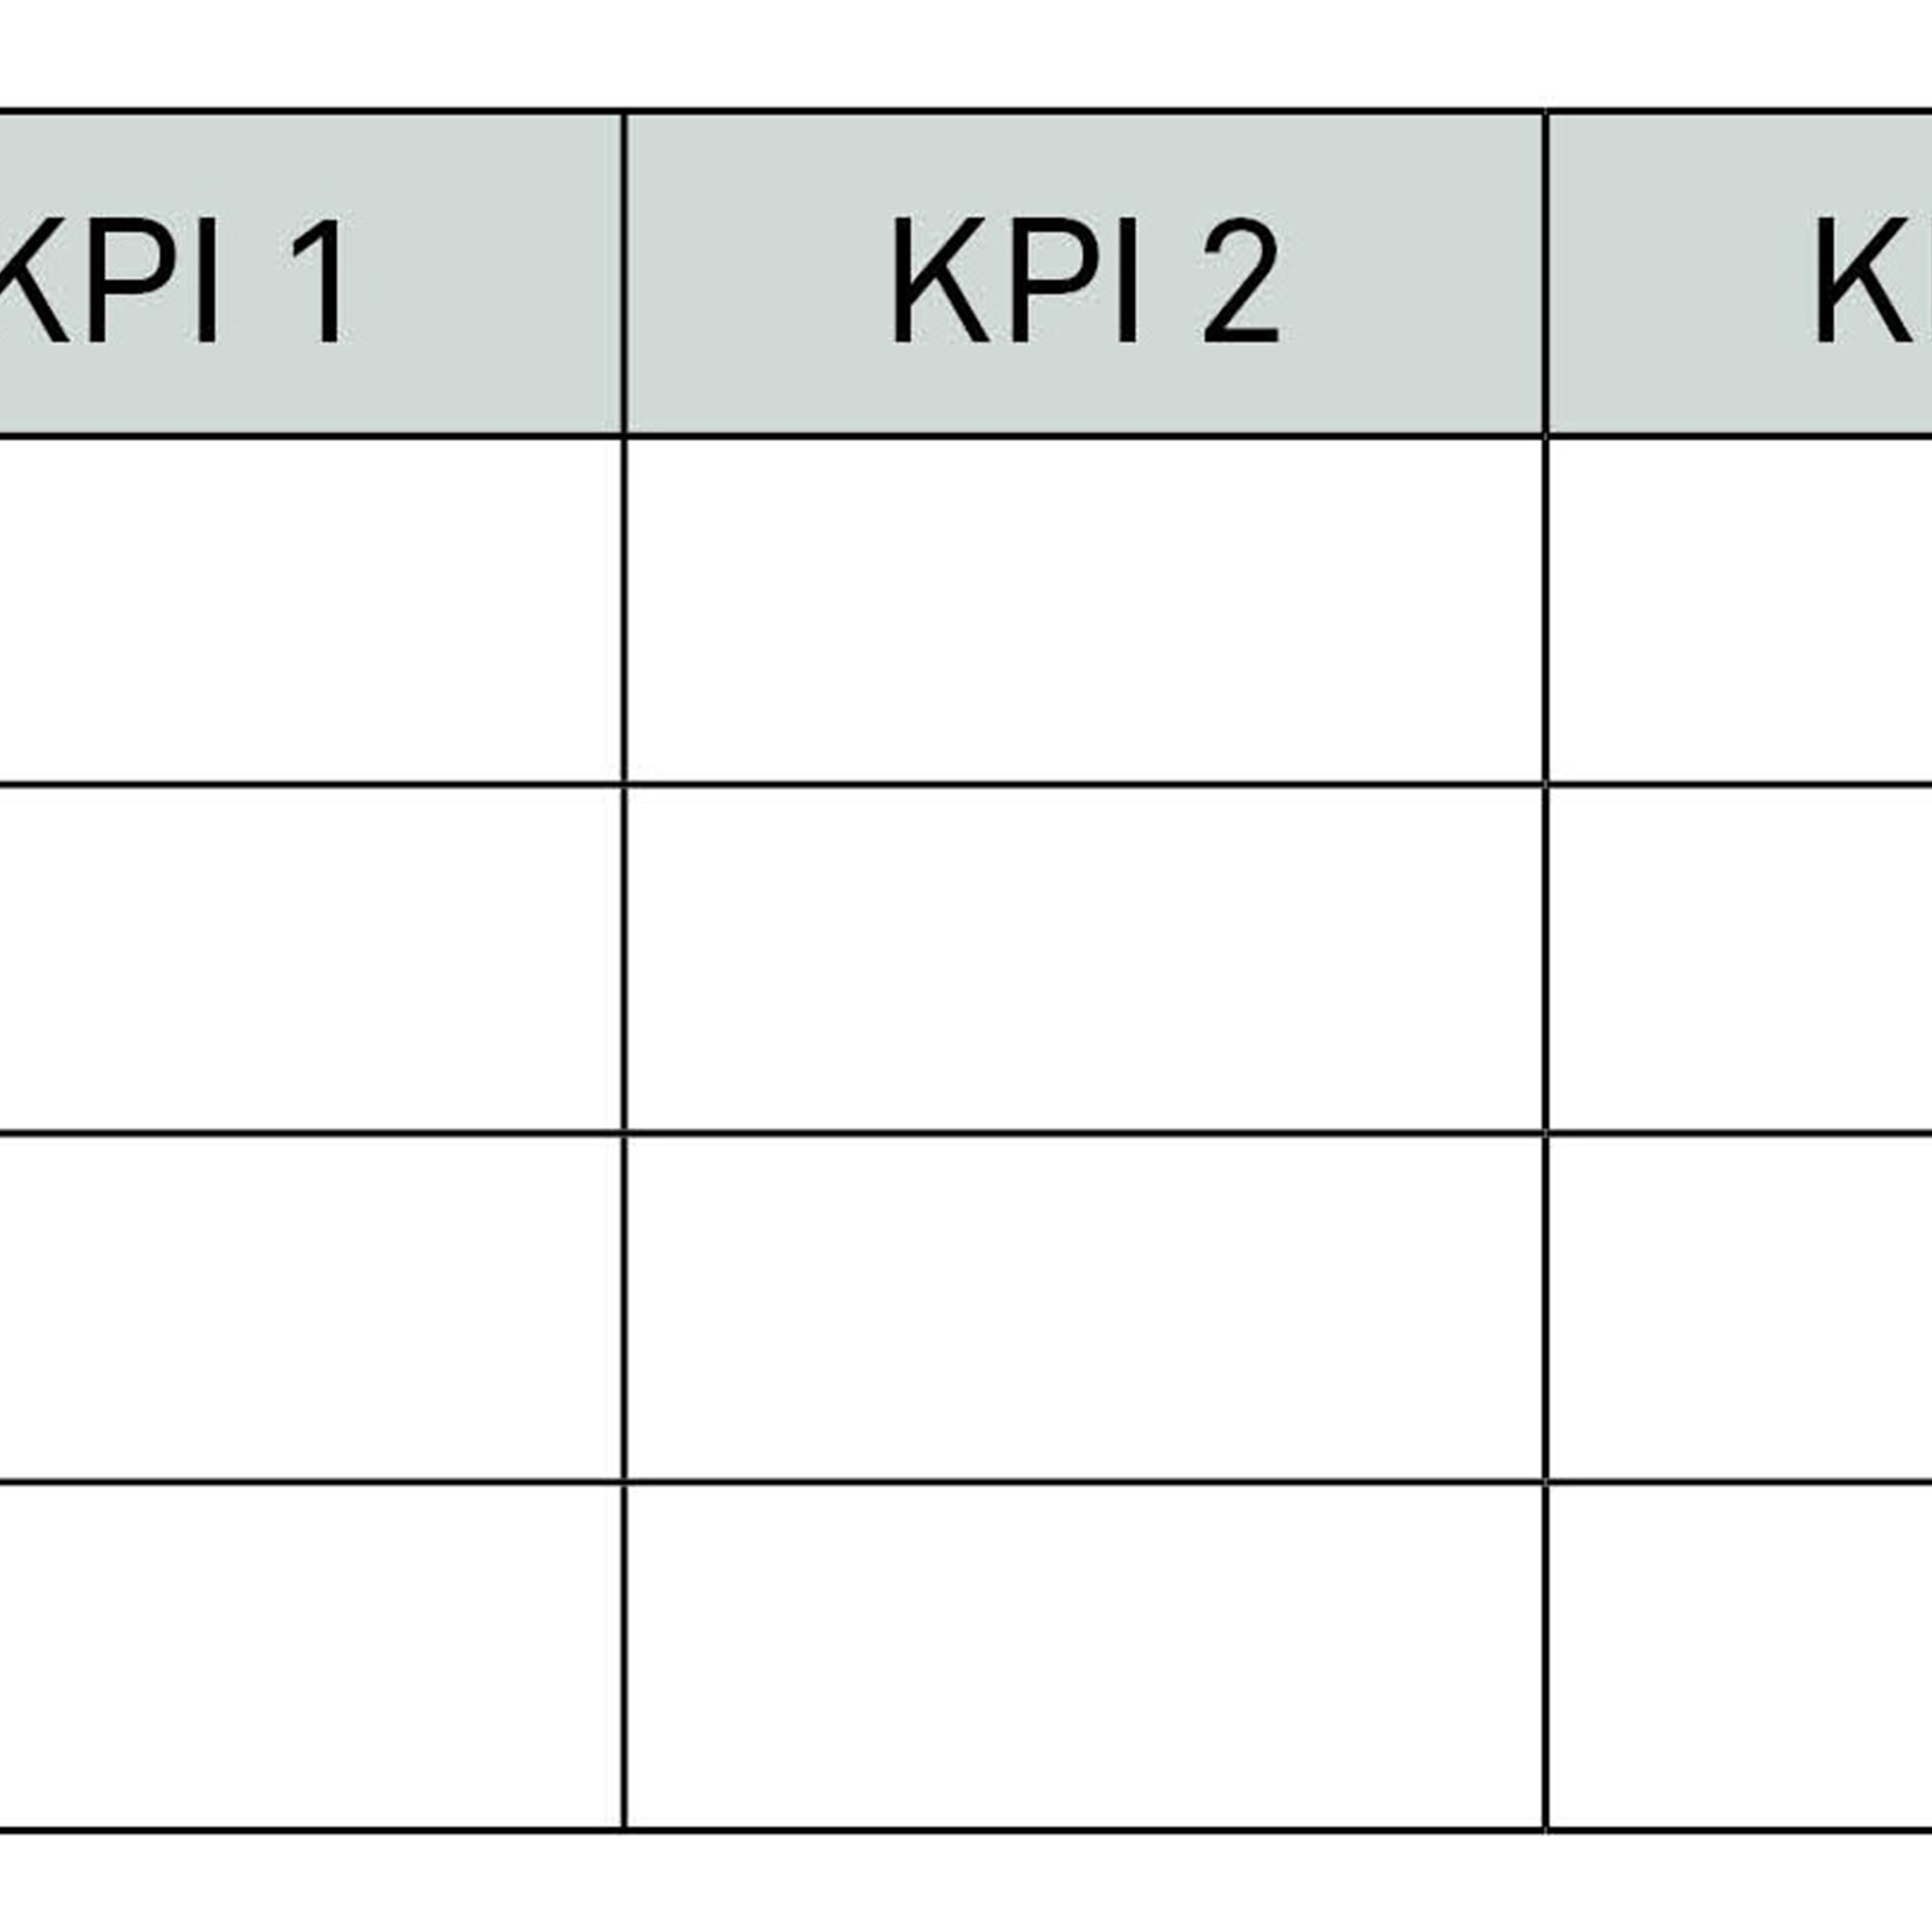 Counting number of KPIs per stakeholder group